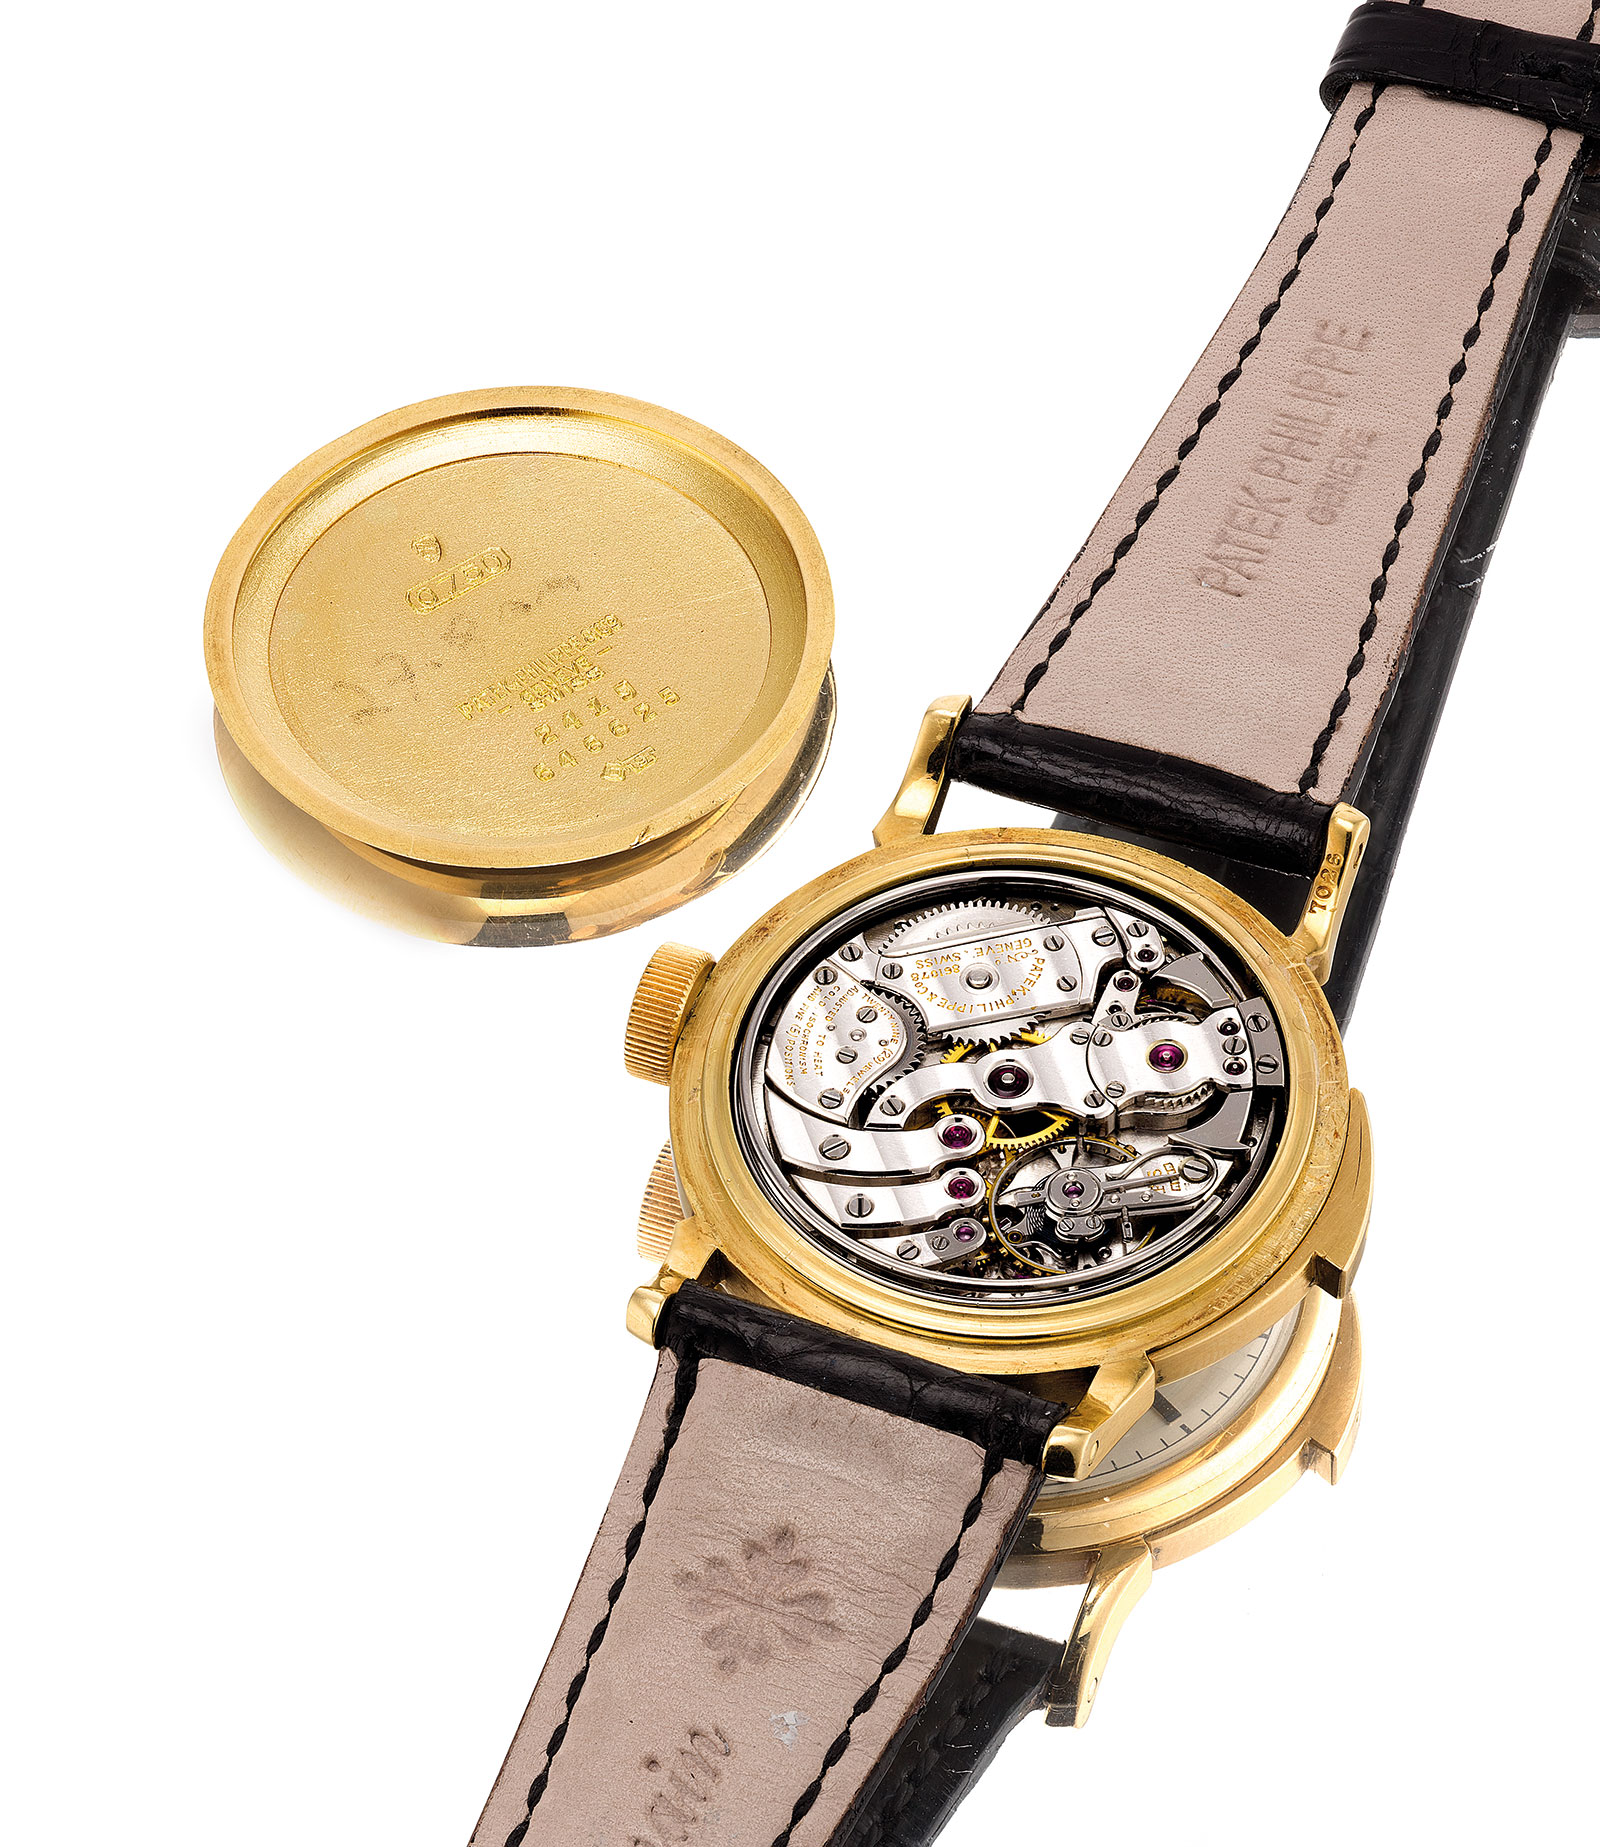 Patek Philippe 2419 minute repeater Cartier movement